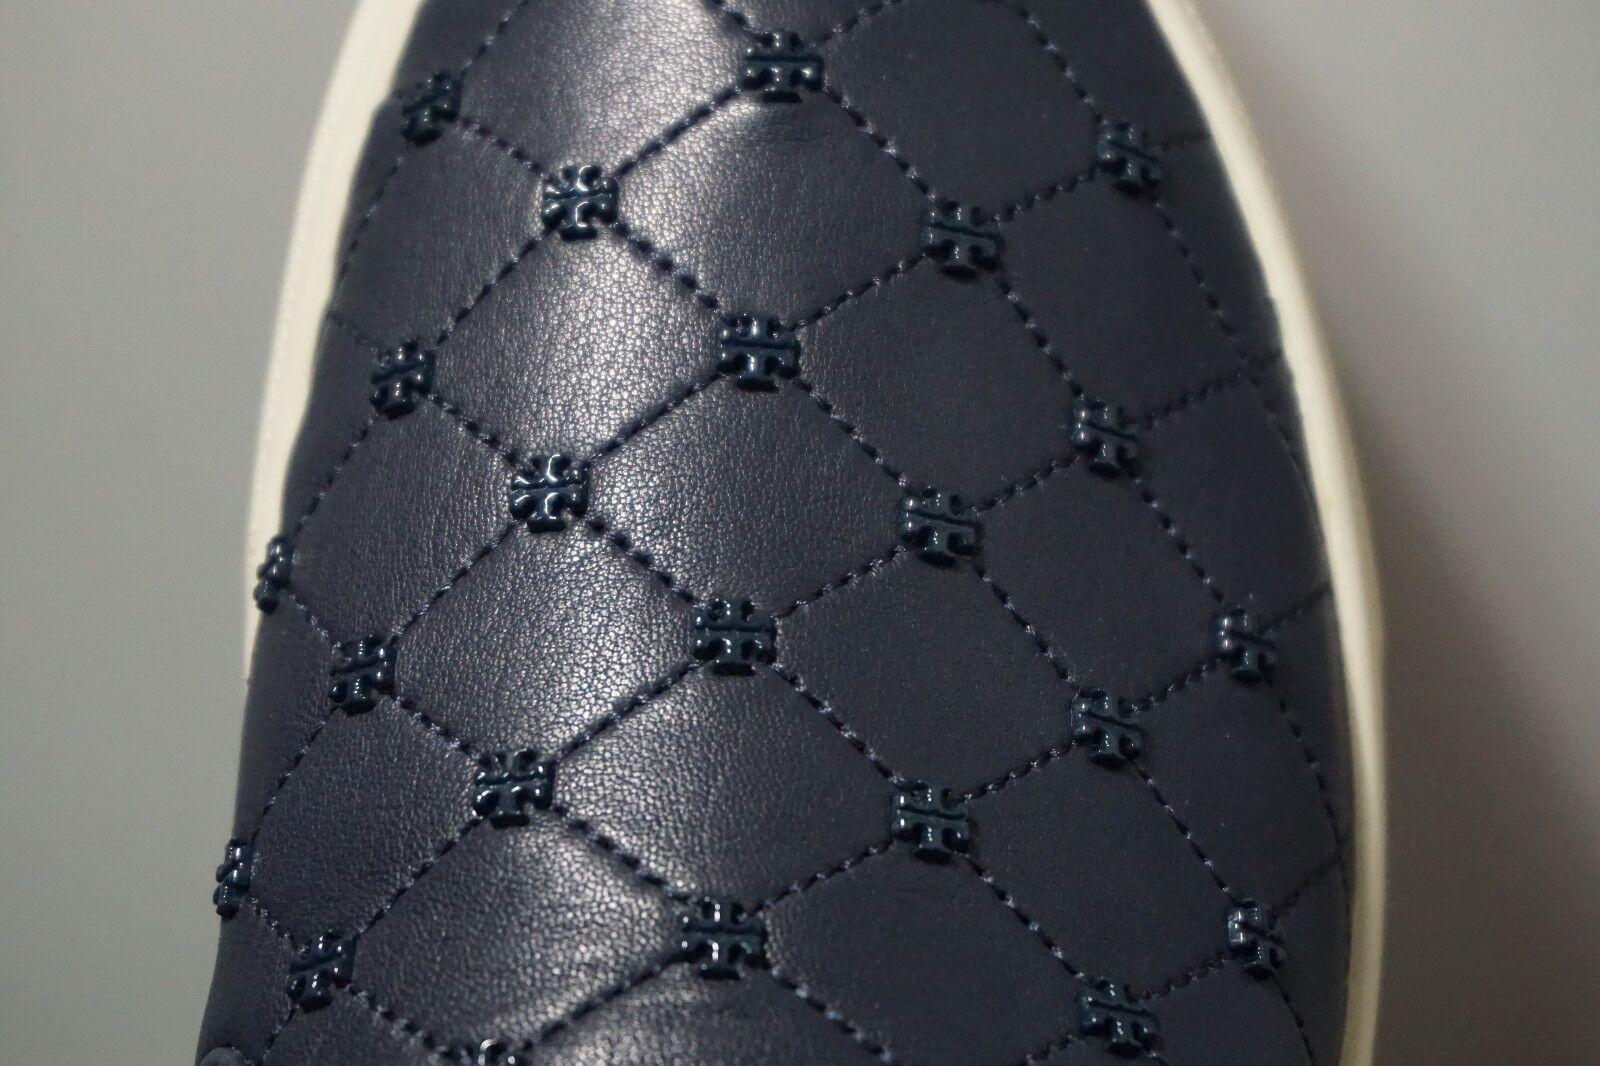 Tory Burch Women's Navy Leather Leather Leather Quilt-Stitch Studded Slip-On Sneakers Size 9 f83fb7